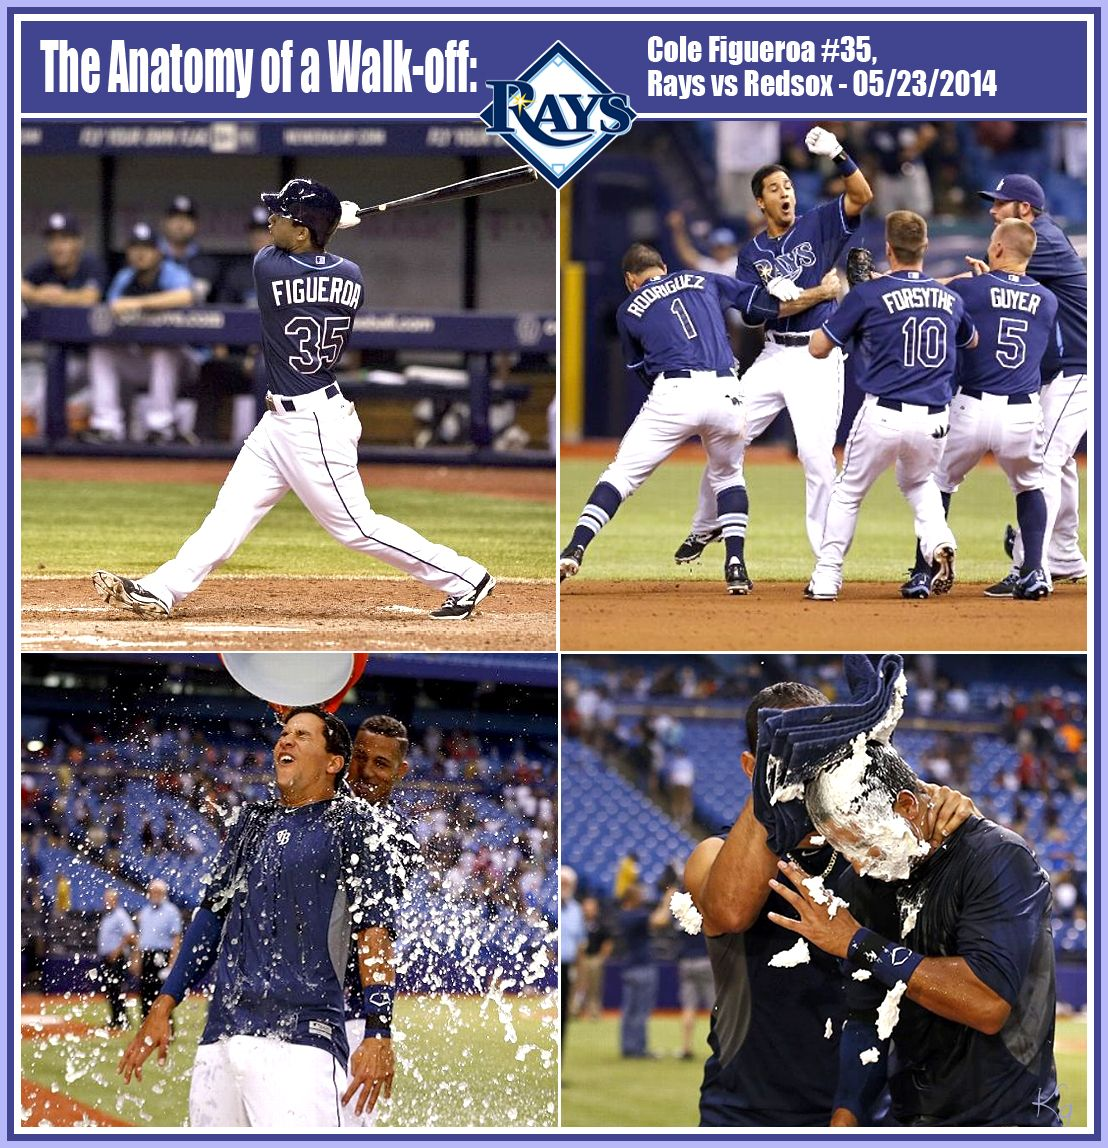 Tampa Bay Rays Pinch Hitter Cole Figueroa Hits A Walk Off Double In The Bottom Of The Ninth Inning As The Rays Edged The Red Sox Tampa Bay Rays Red Sox Rays